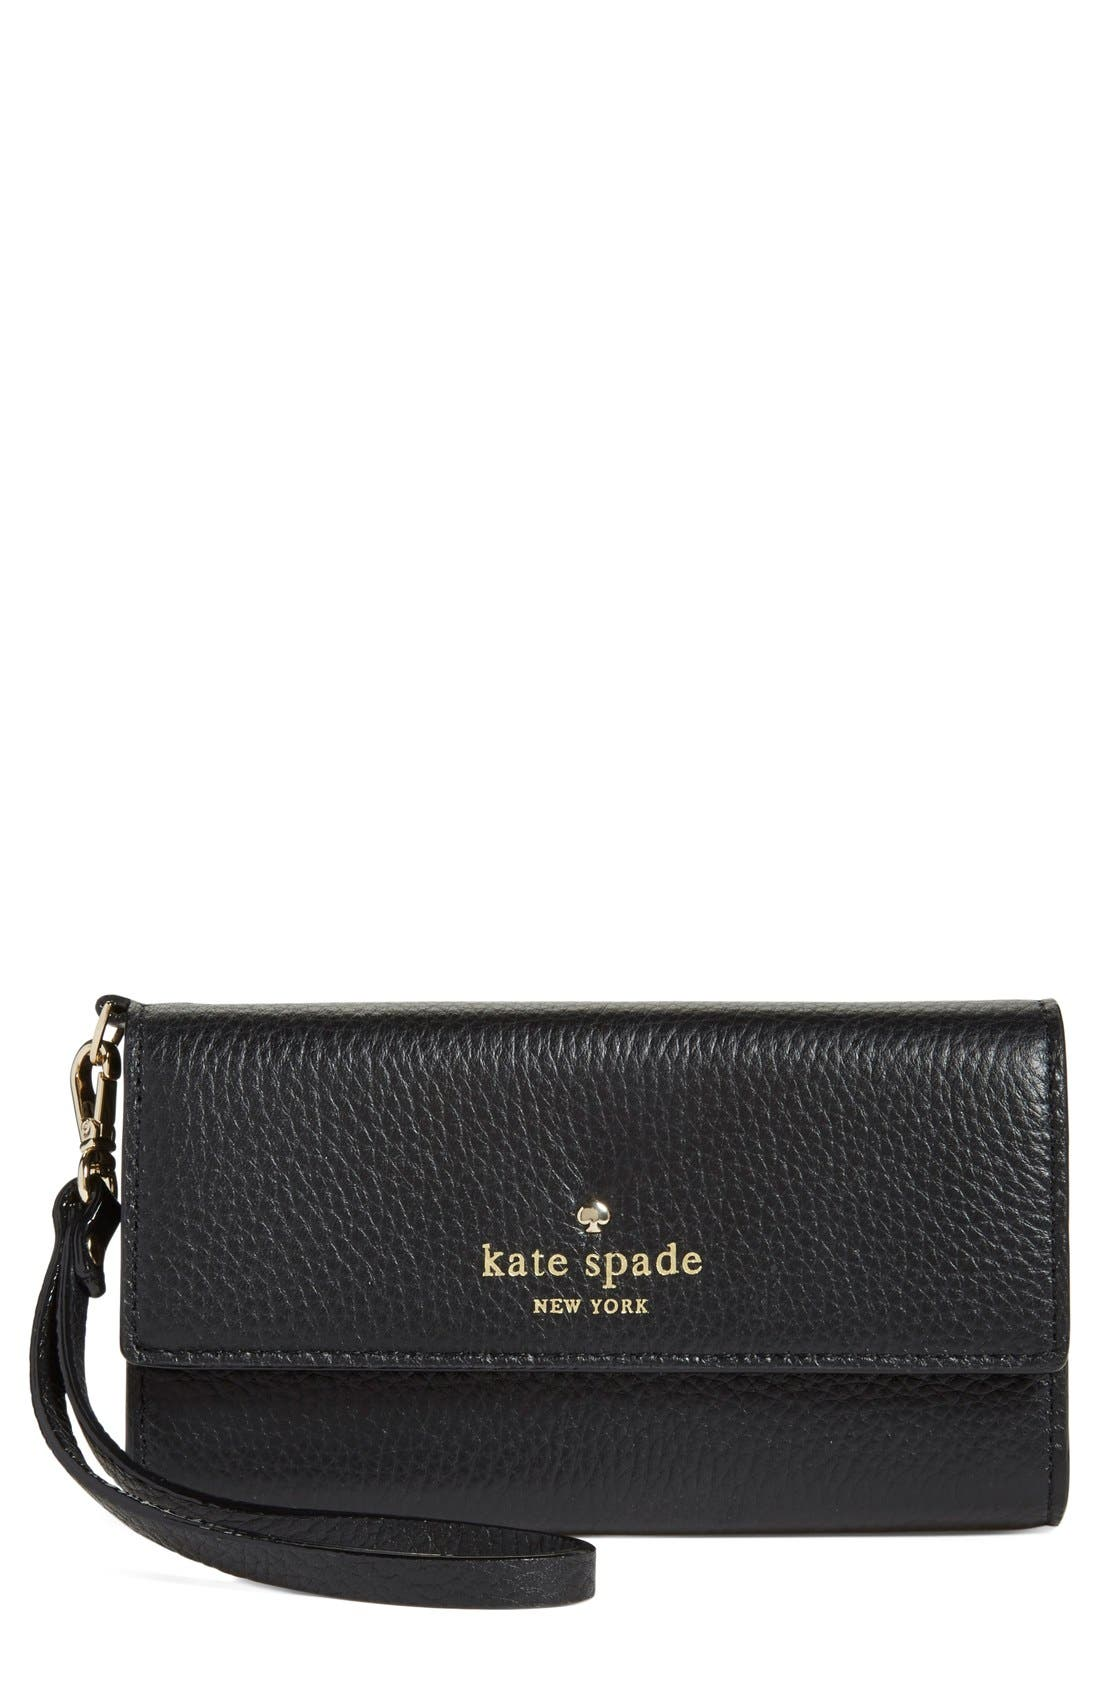 'spencer court' leather phone wristlet,                             Main thumbnail 1, color,                             001